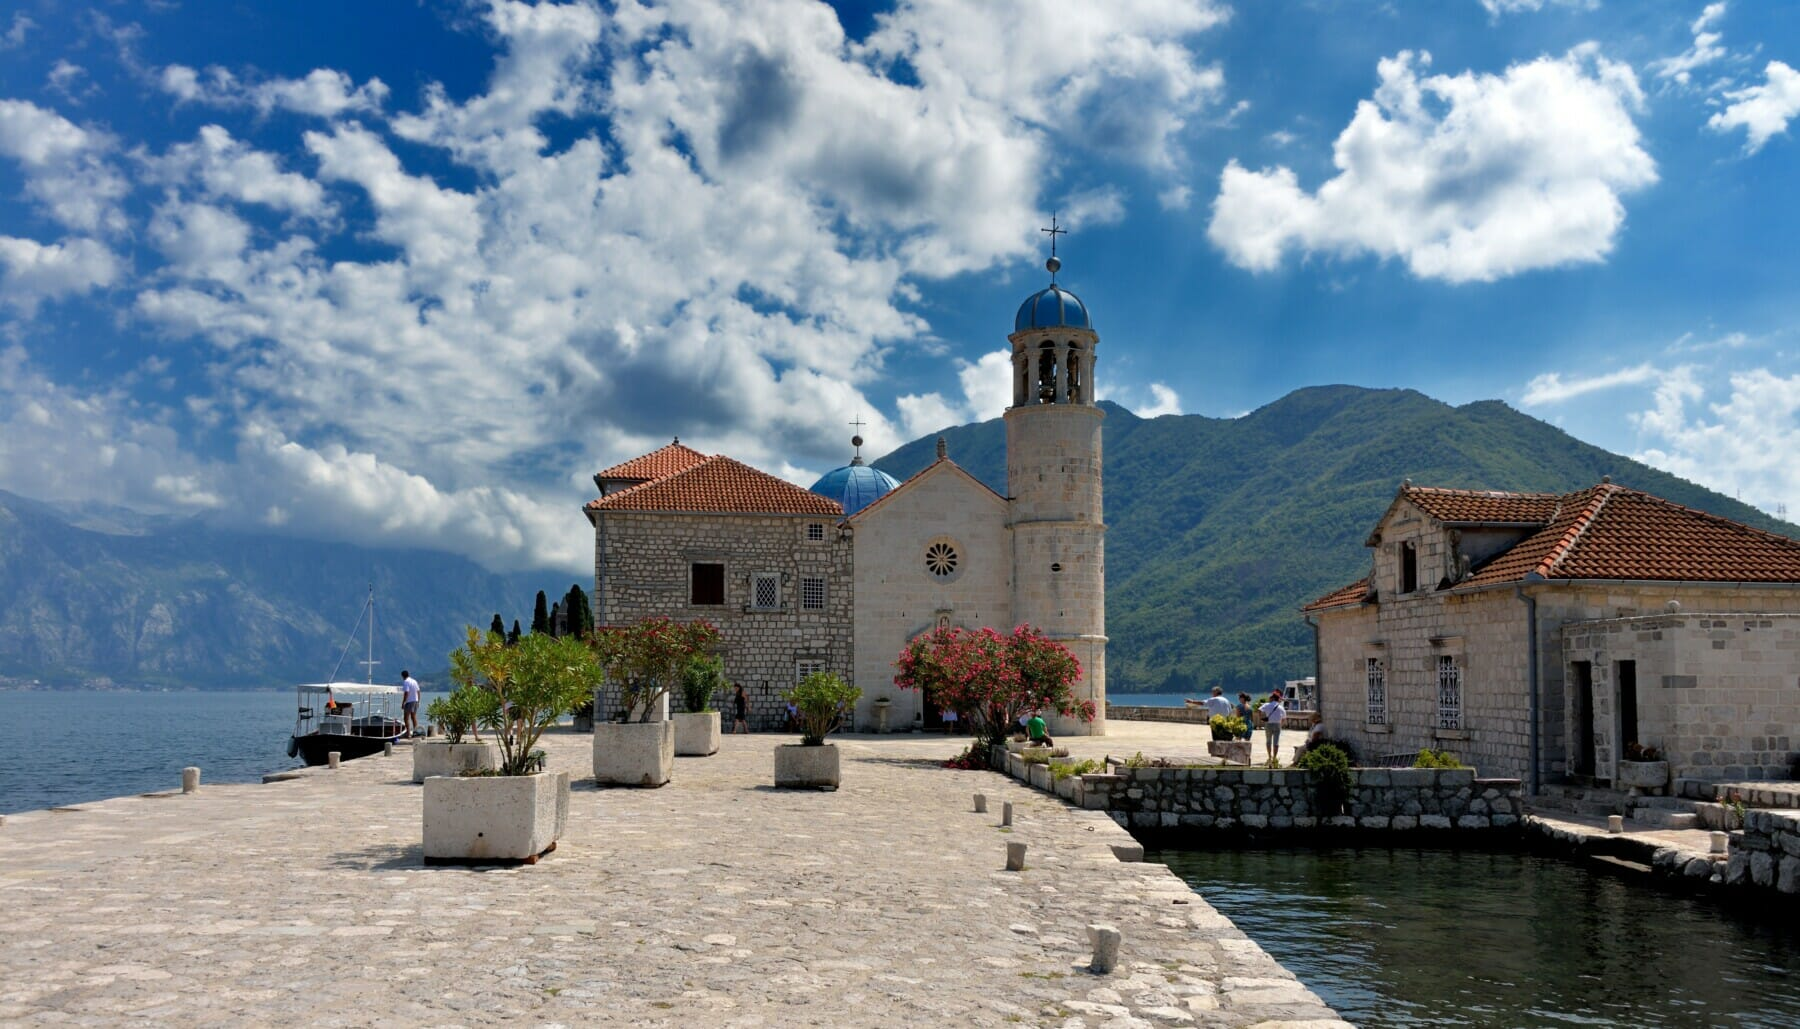 the church of our lady of the rocks on a blue sky with clouds and mountains montenegro adventure